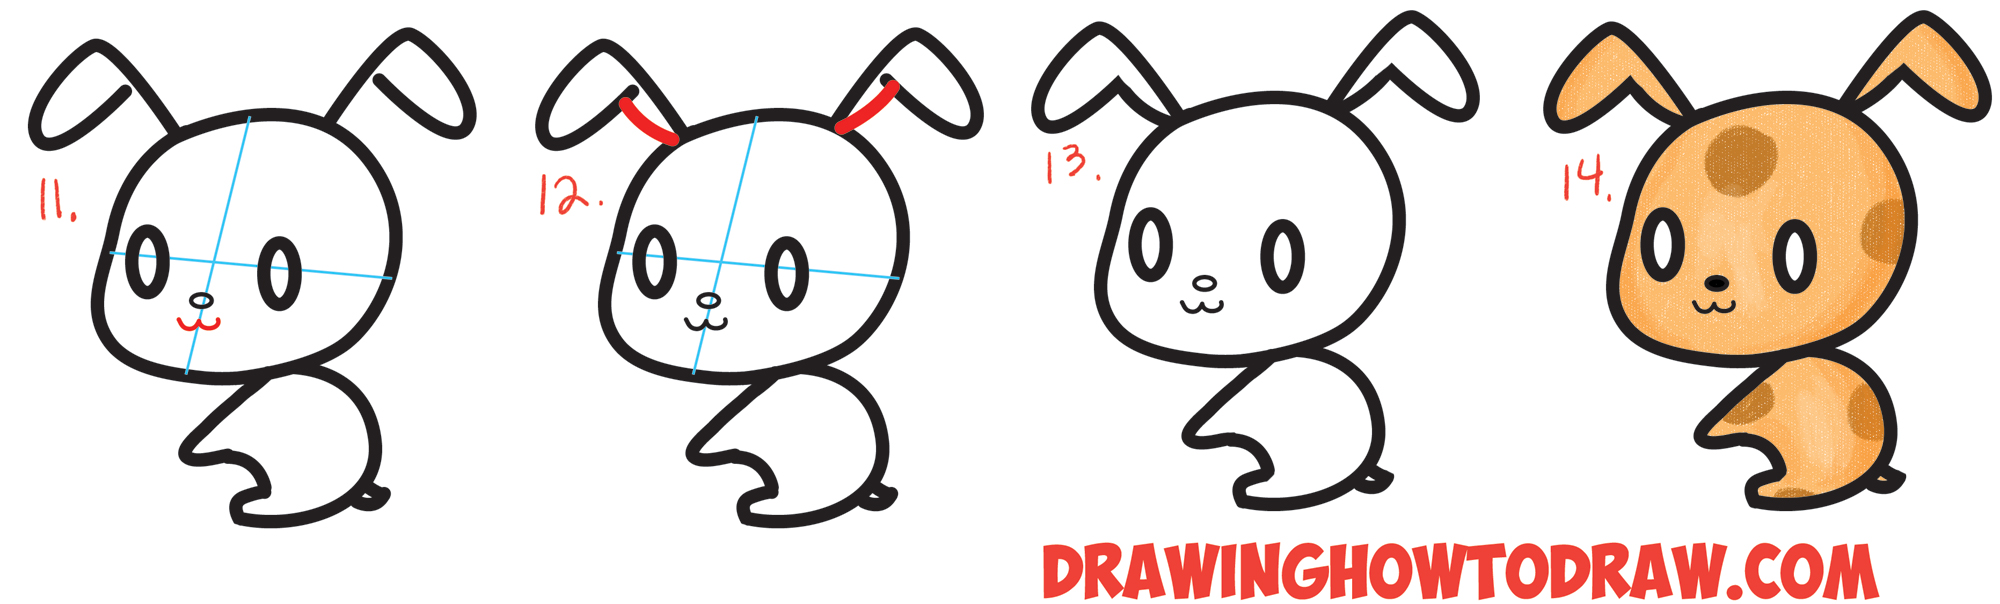 Uncategorized Easy Puppy Drawing how to draw cute chibi kawaii characters with number 3 shapes a cartoon shape puppy doggy